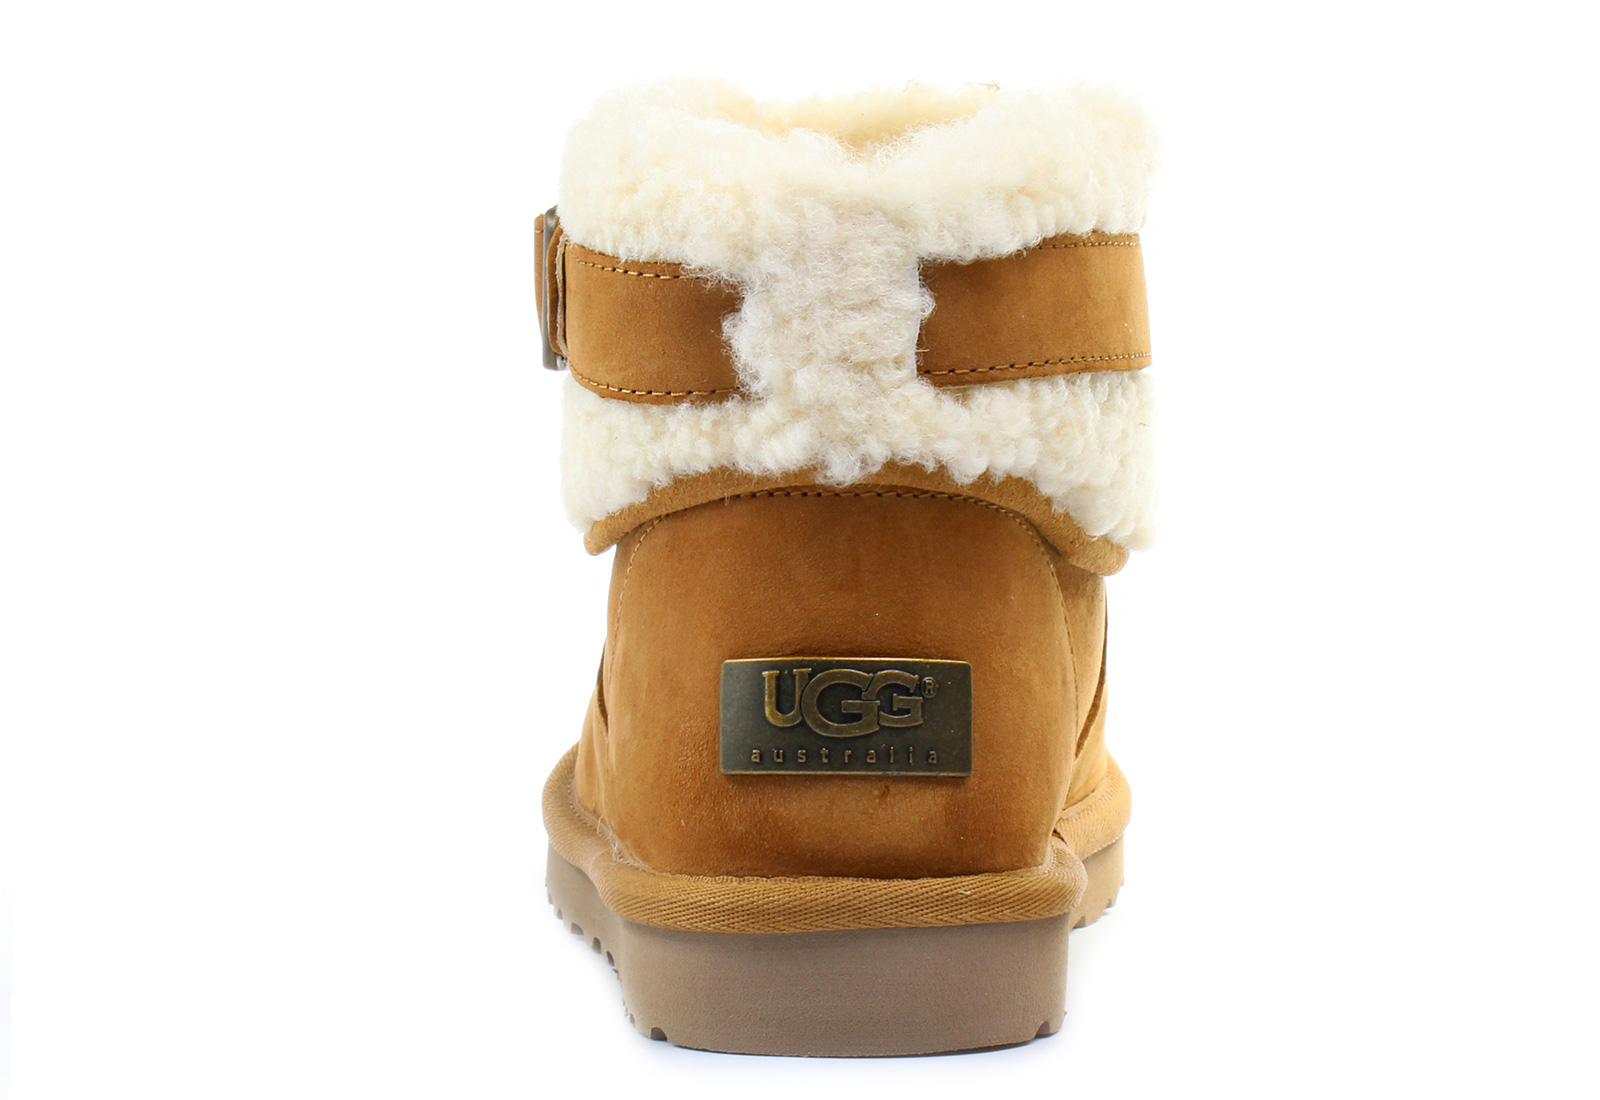 ugg uk press office